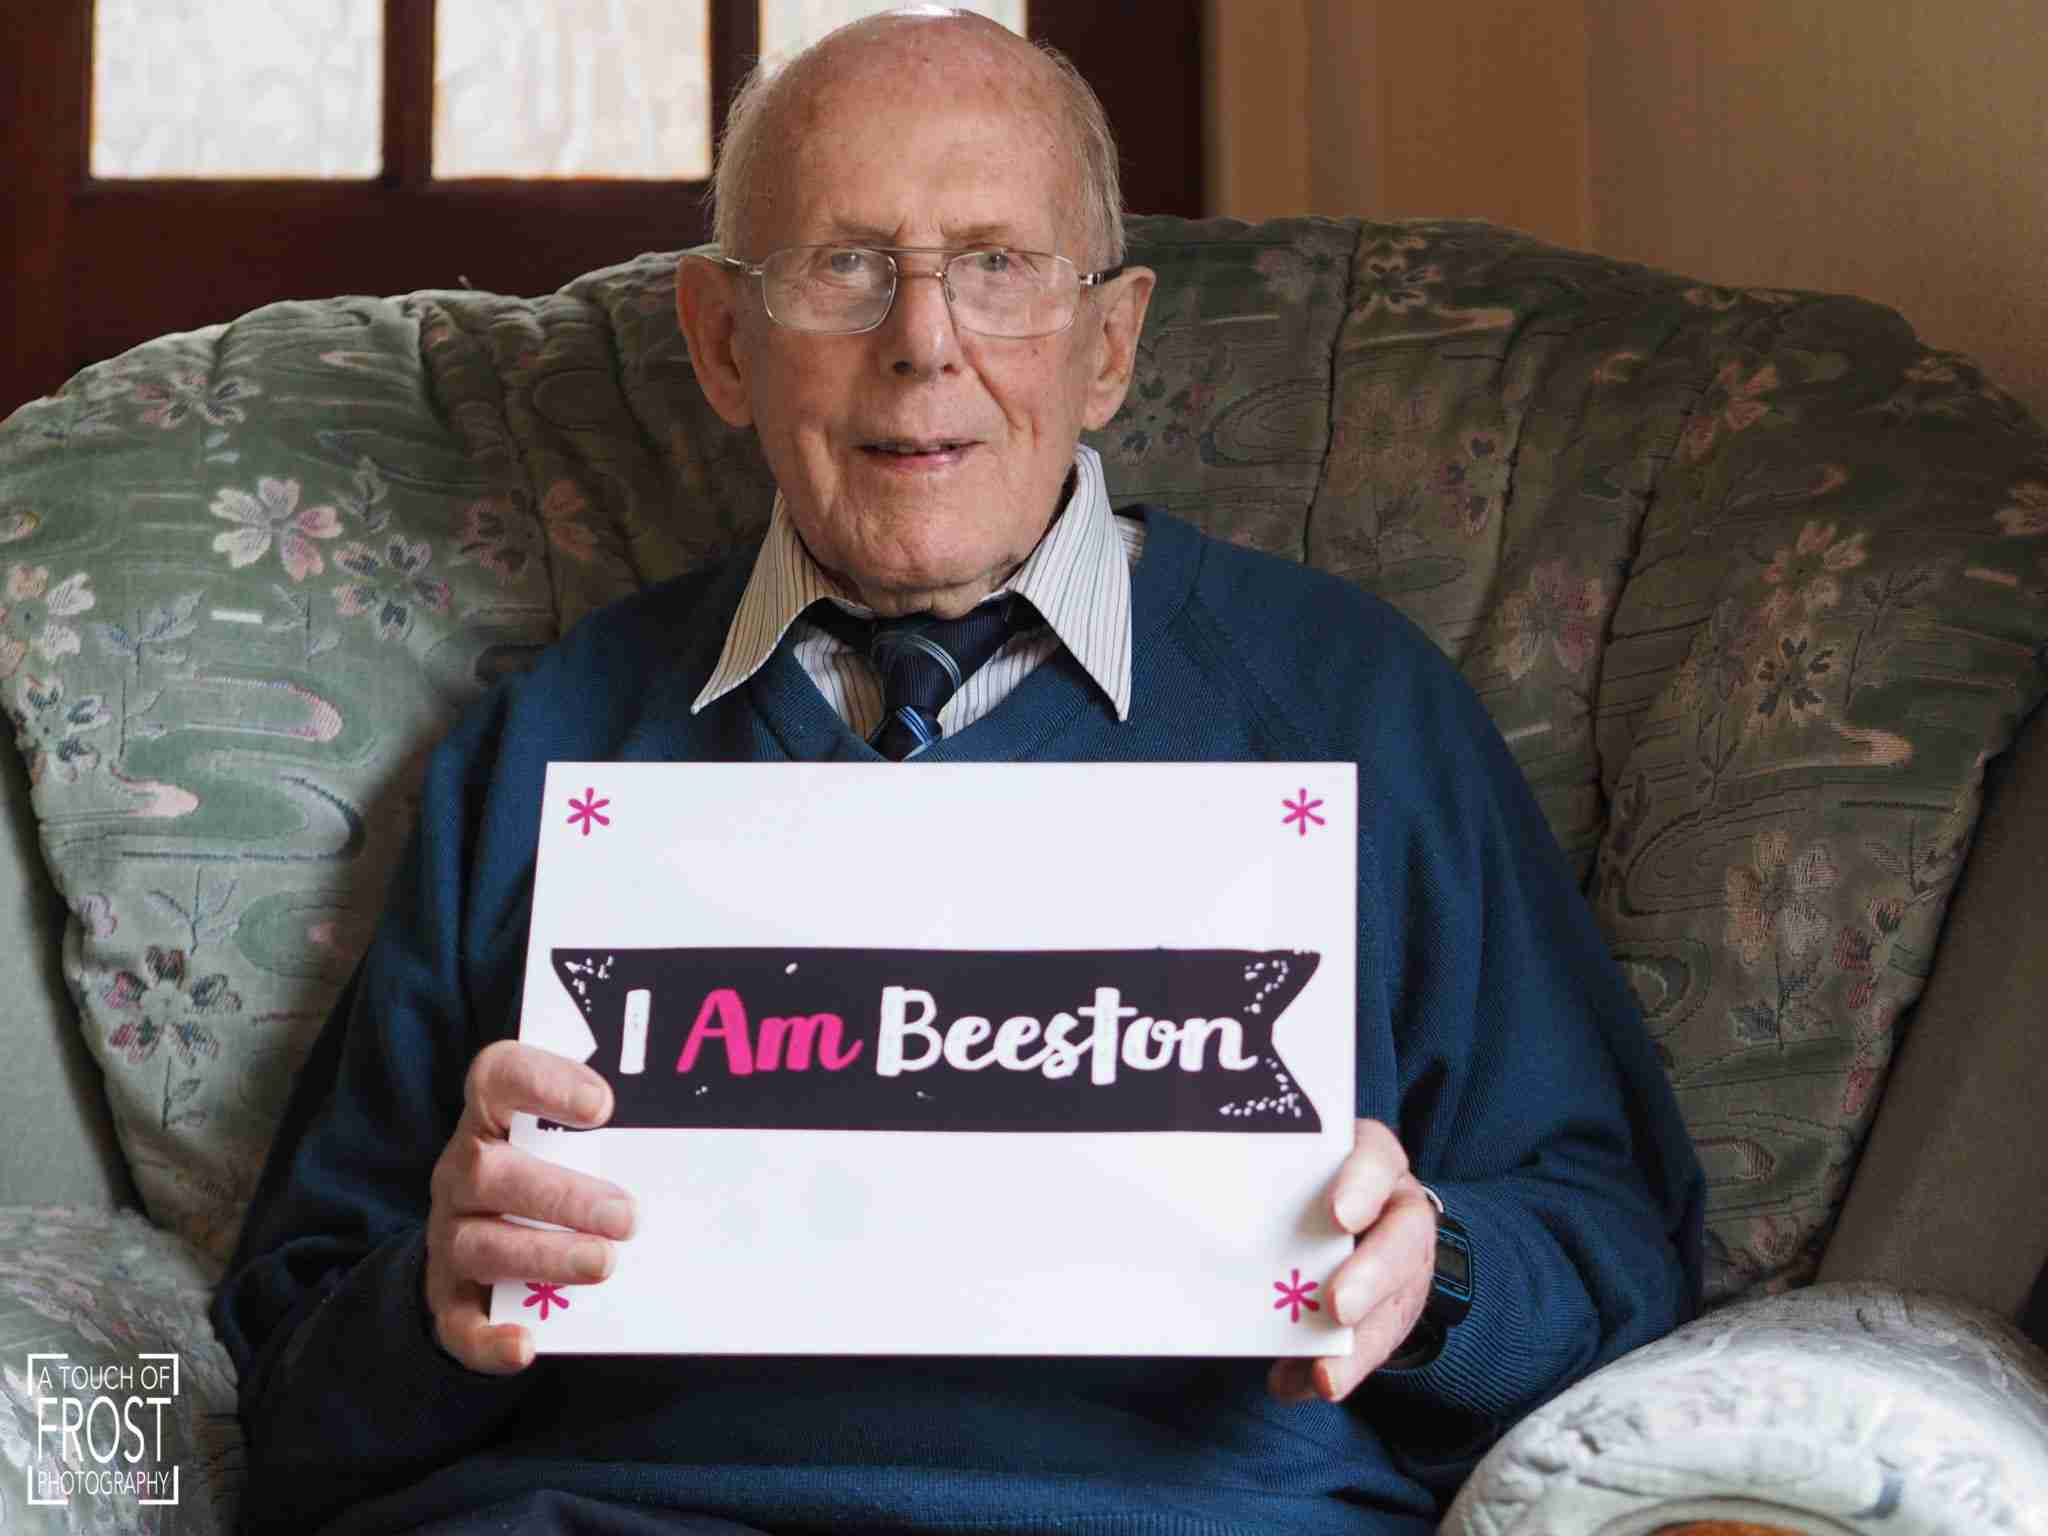 I Am Beeston: William Charles Wheatley MBE